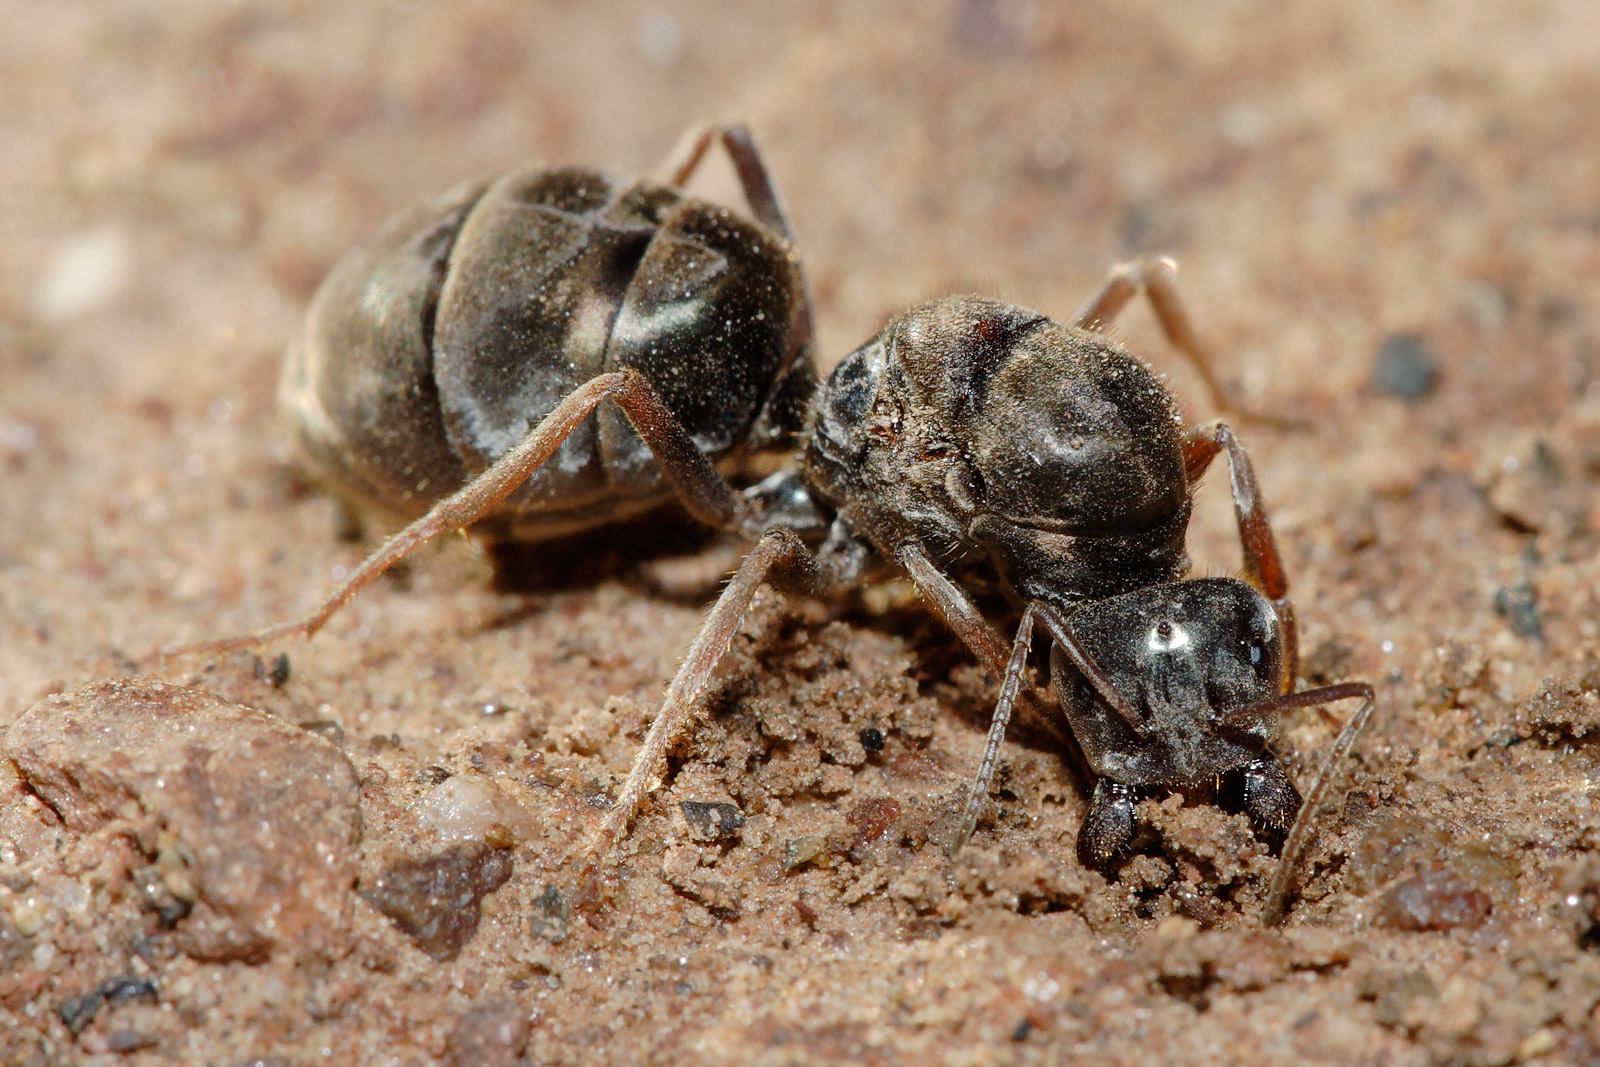 File:Meat eater ant qeen excavating hole.jpg - Wikipedia